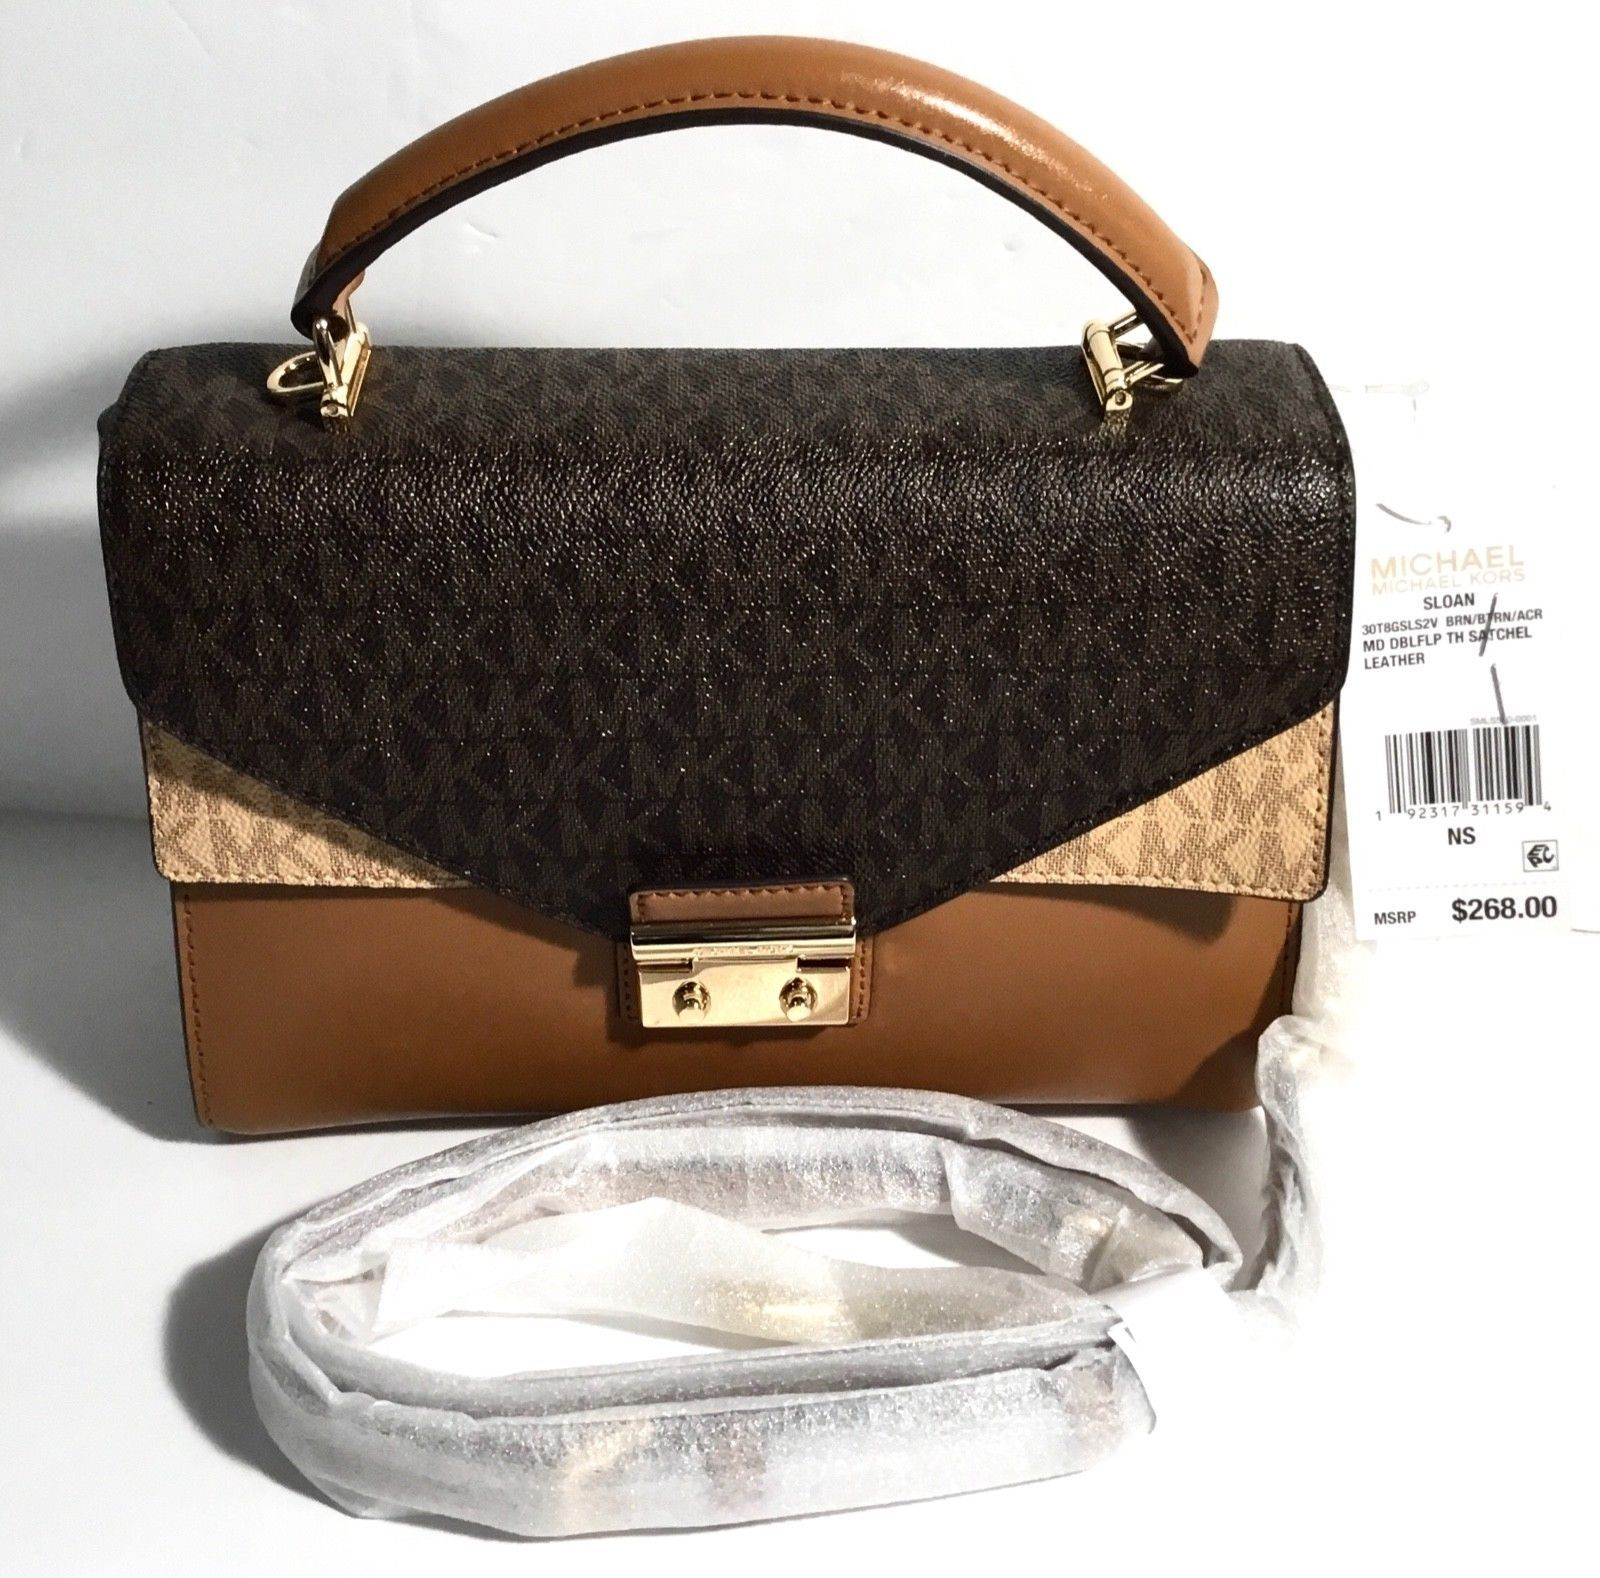 7212875983cf 57. 57. Previous. Michael Kors Sloan Top Handle Signature Logo Medium  Satchel Bag, Acorn Brown